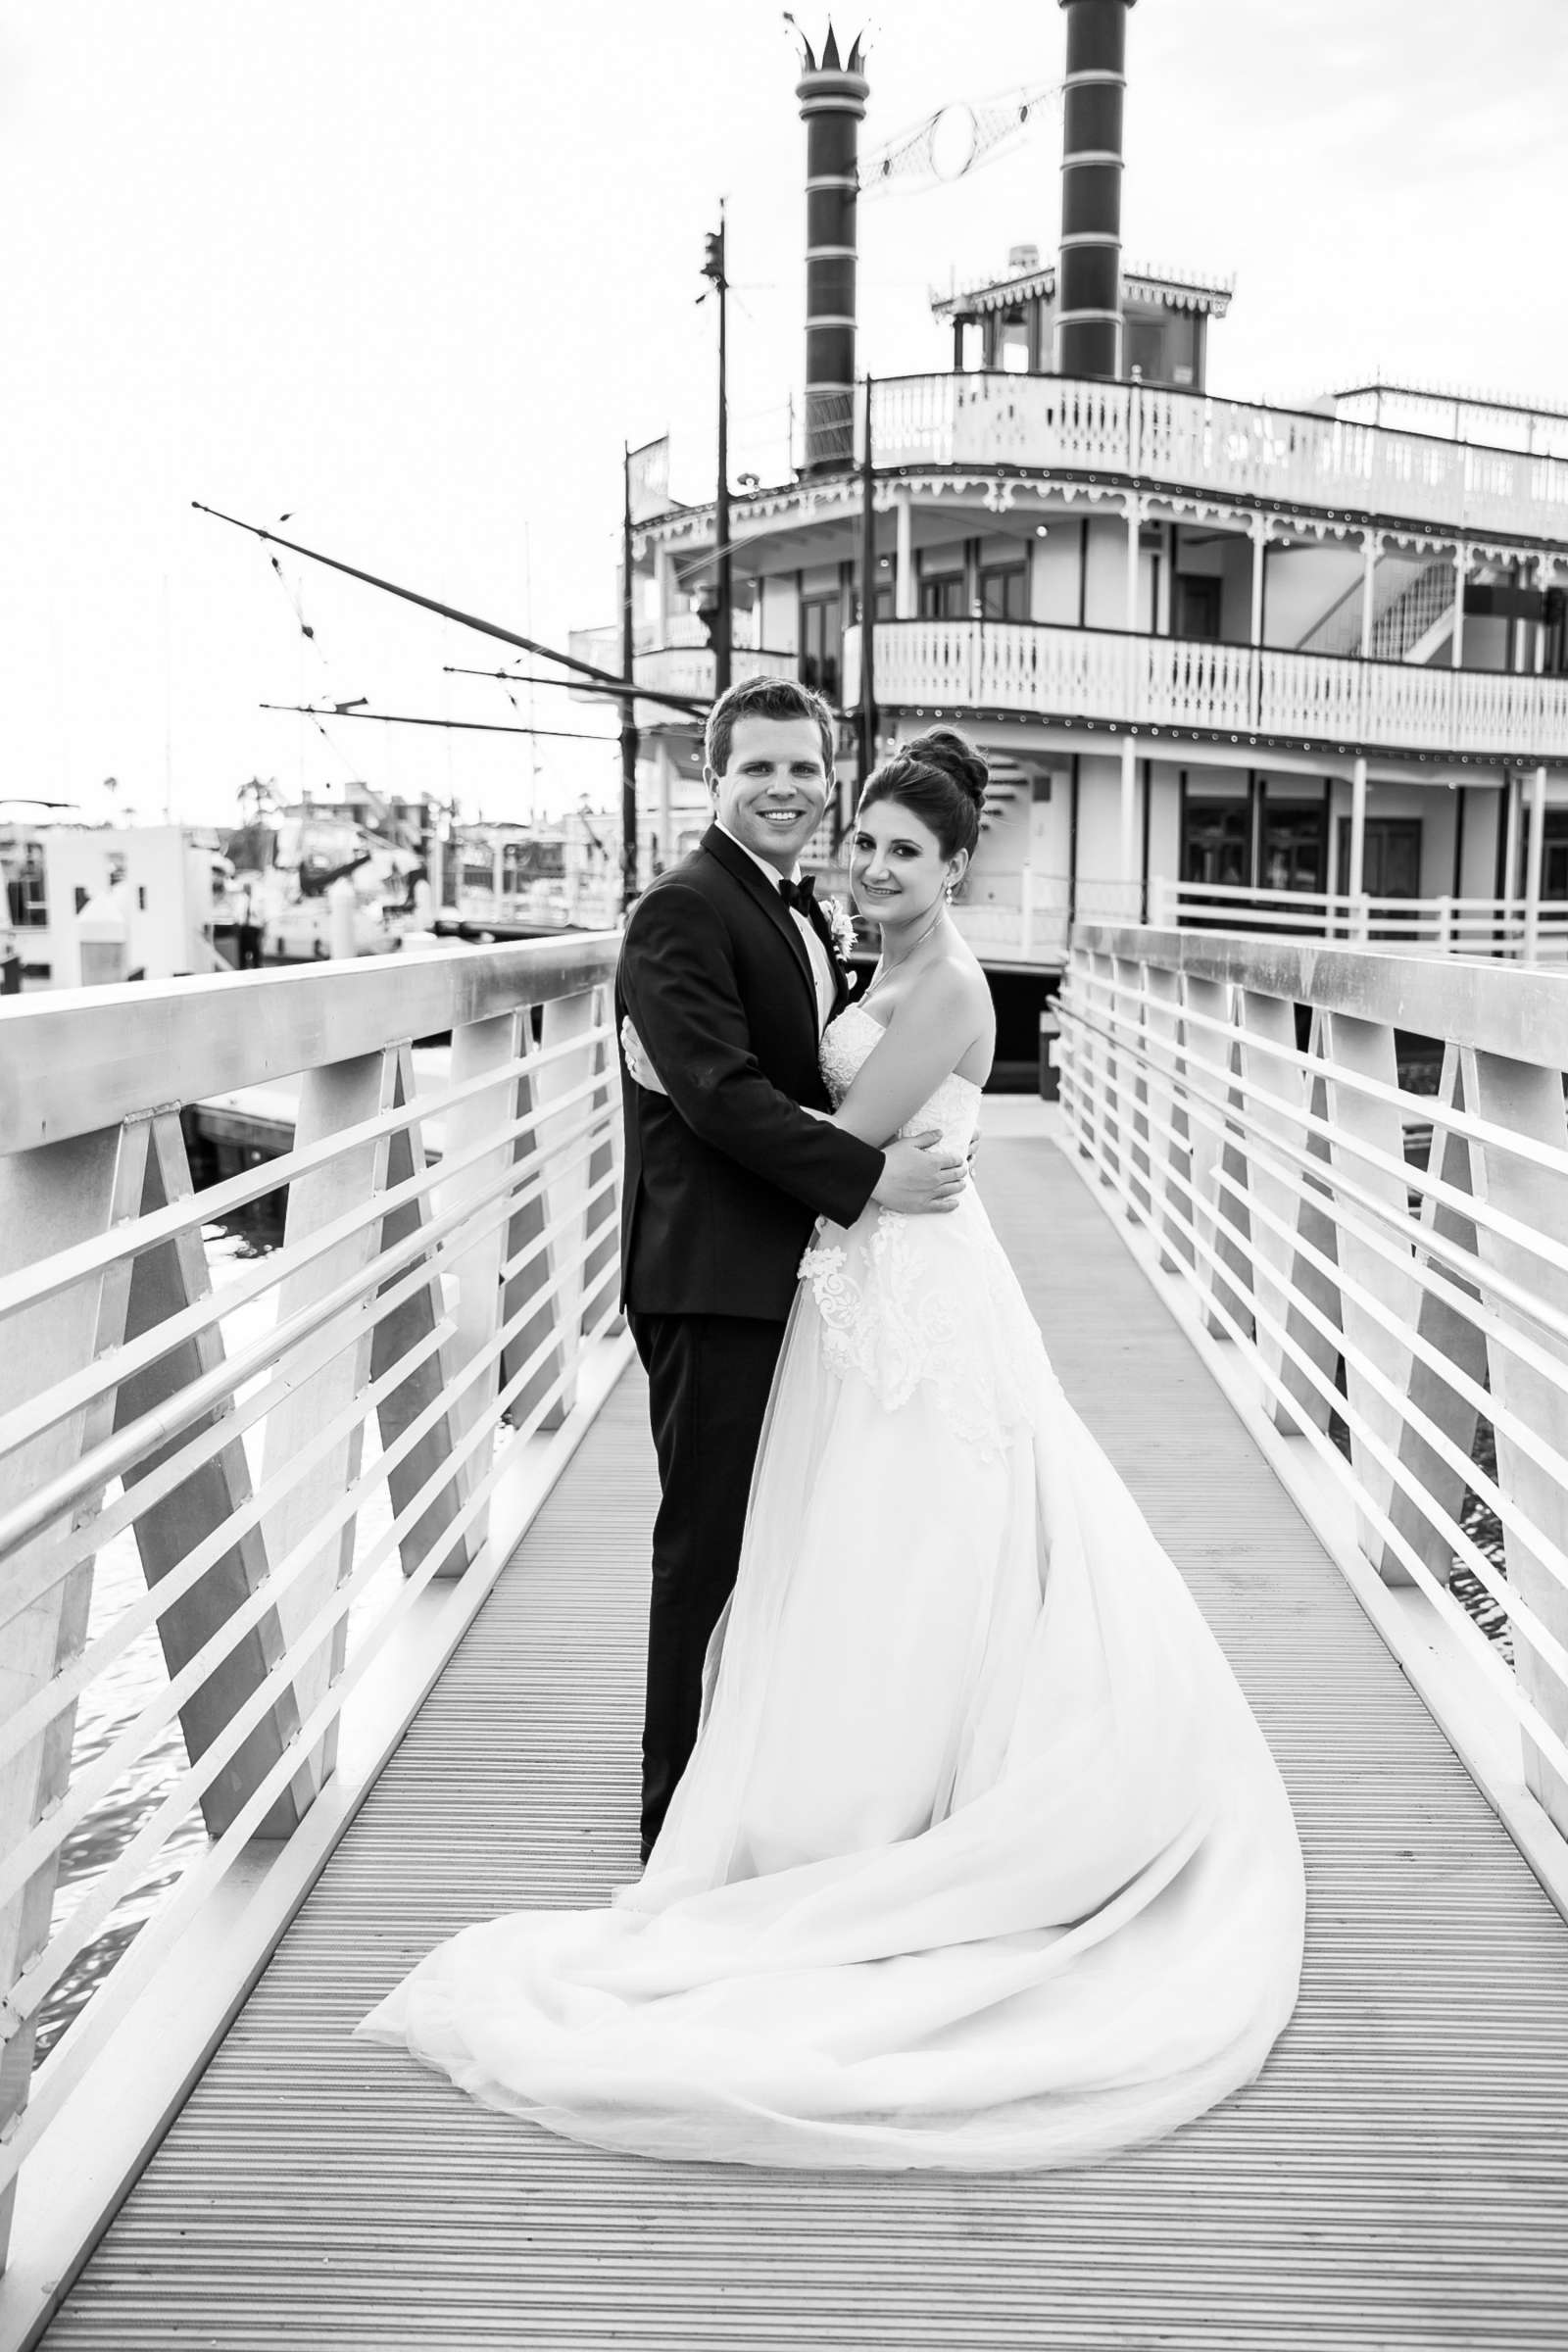 Bahia Hotel Wedding coordinated by I Do Weddings, Meredith and Jack Wedding Photo #4 by True Photography